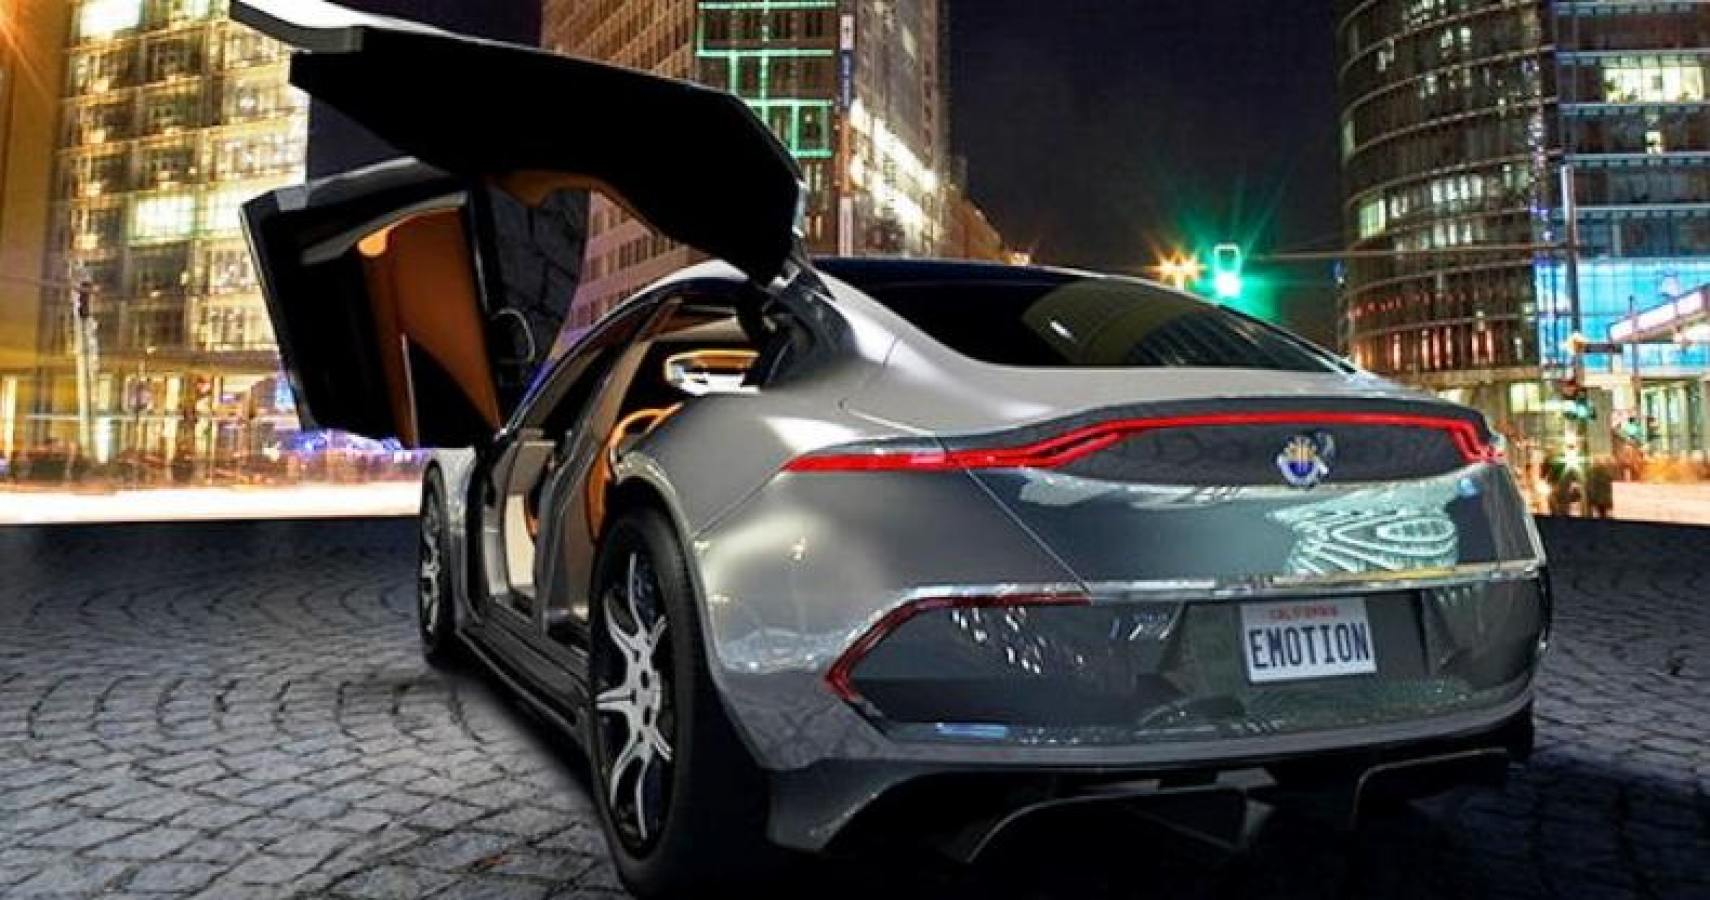 Club Fisker Emotion